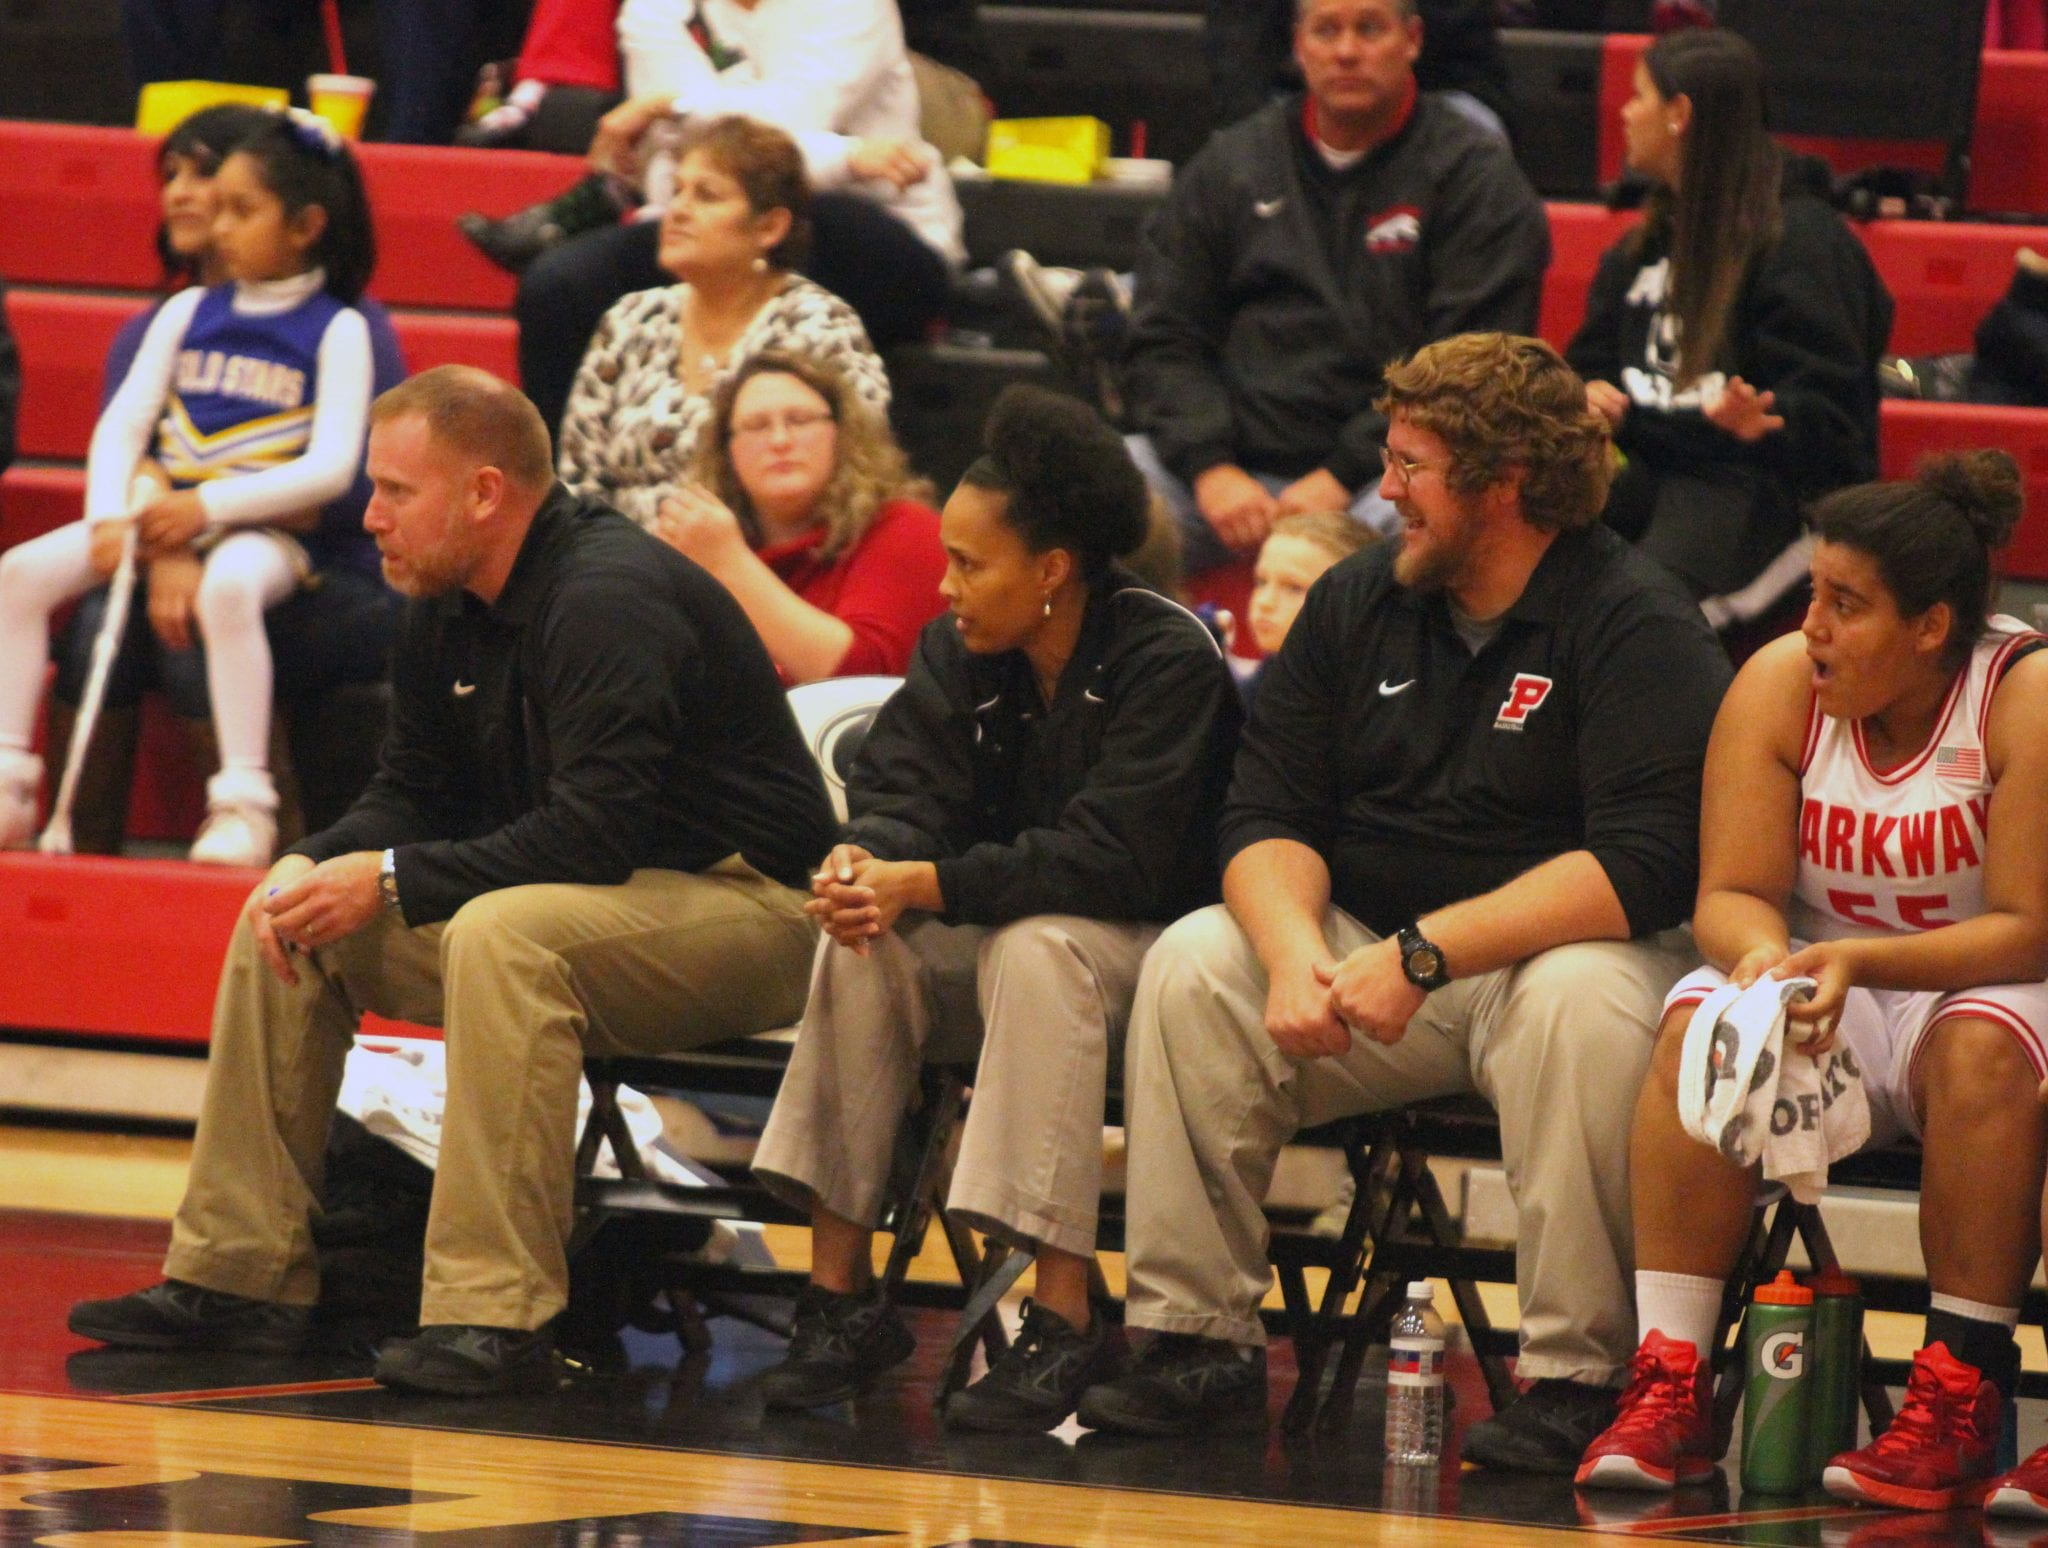 Russell Hedges/Press-Tribune New Parkway head girls basketball coach Gloria Williams, then an assistant coach, sits between former head coach Aaron Megee and assistant Kent Falting during a game in the 2014-15 season.